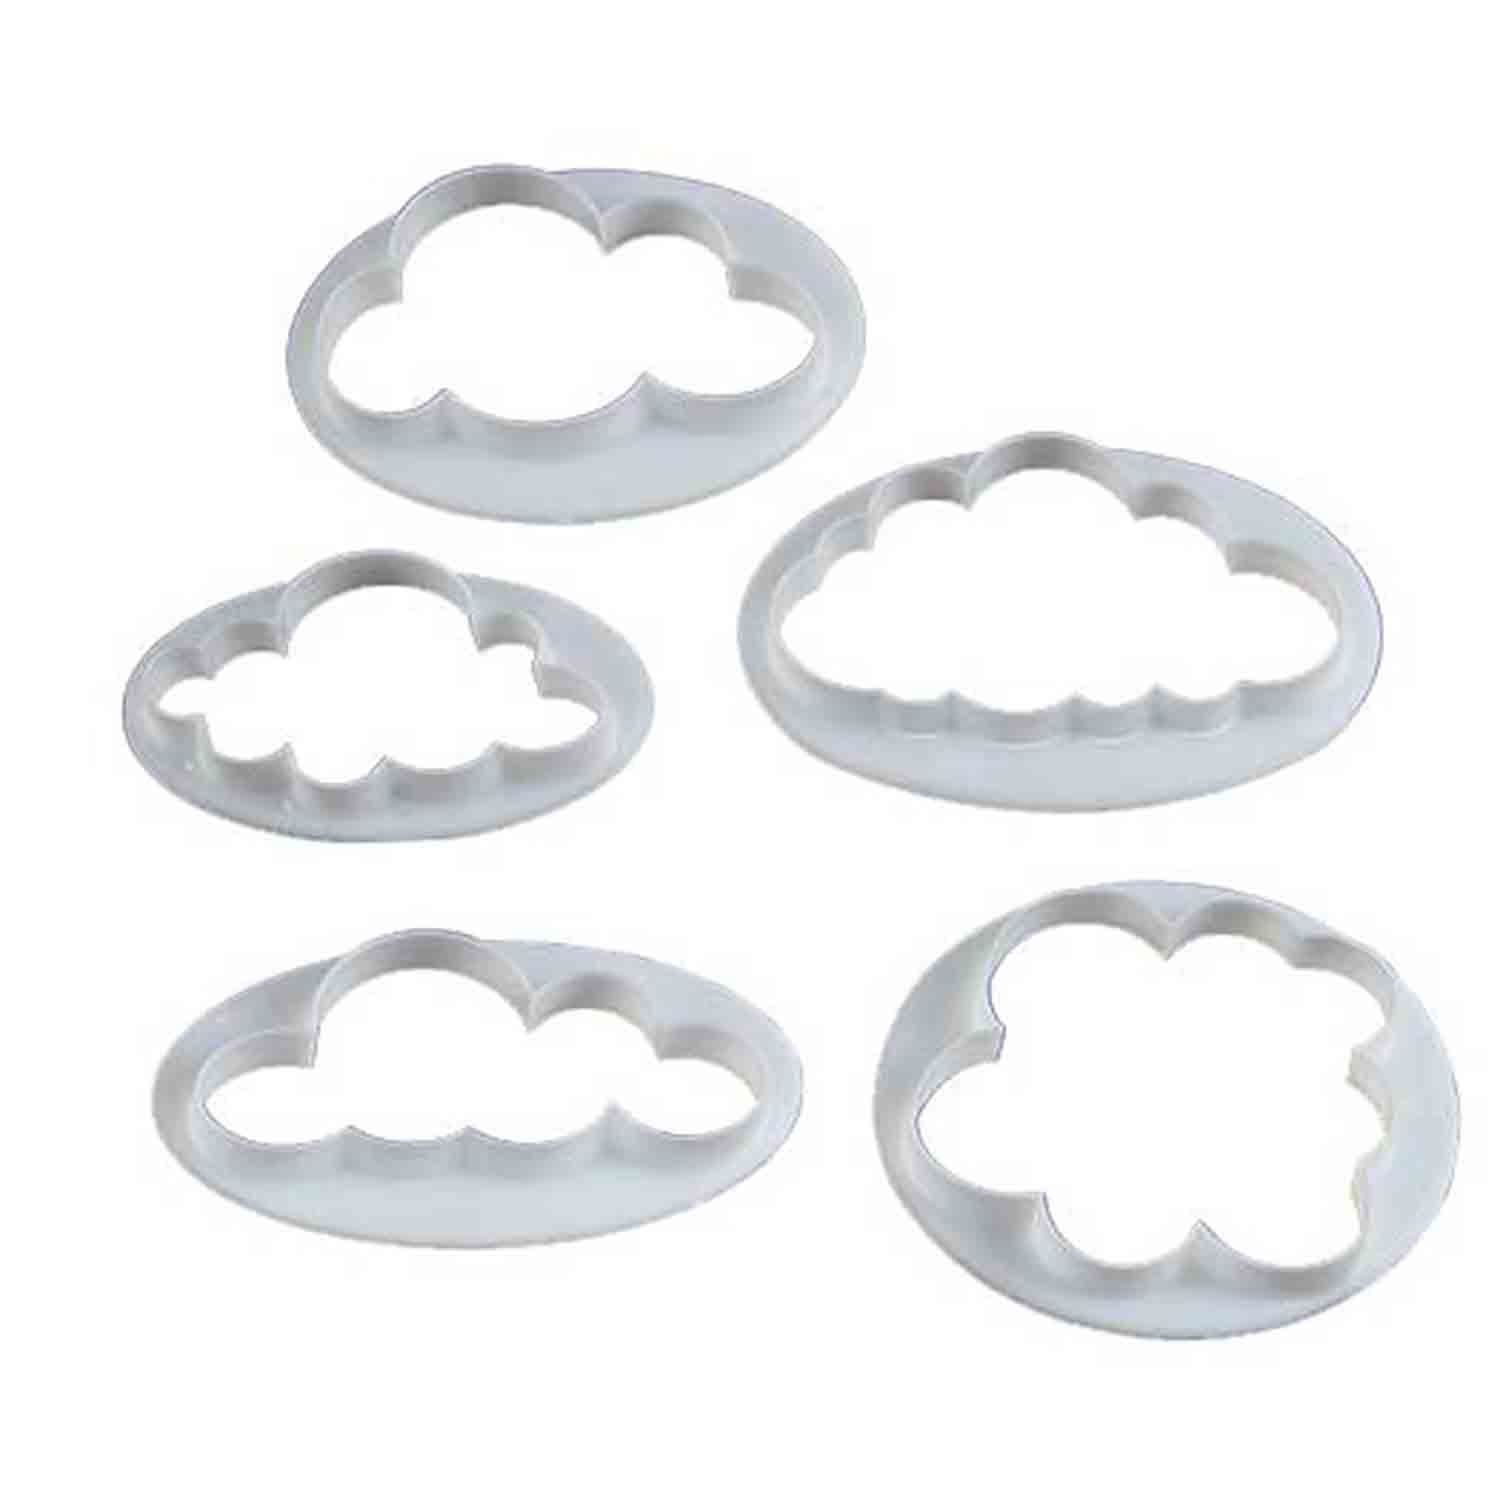 Fluffy Cloud Cutter Set